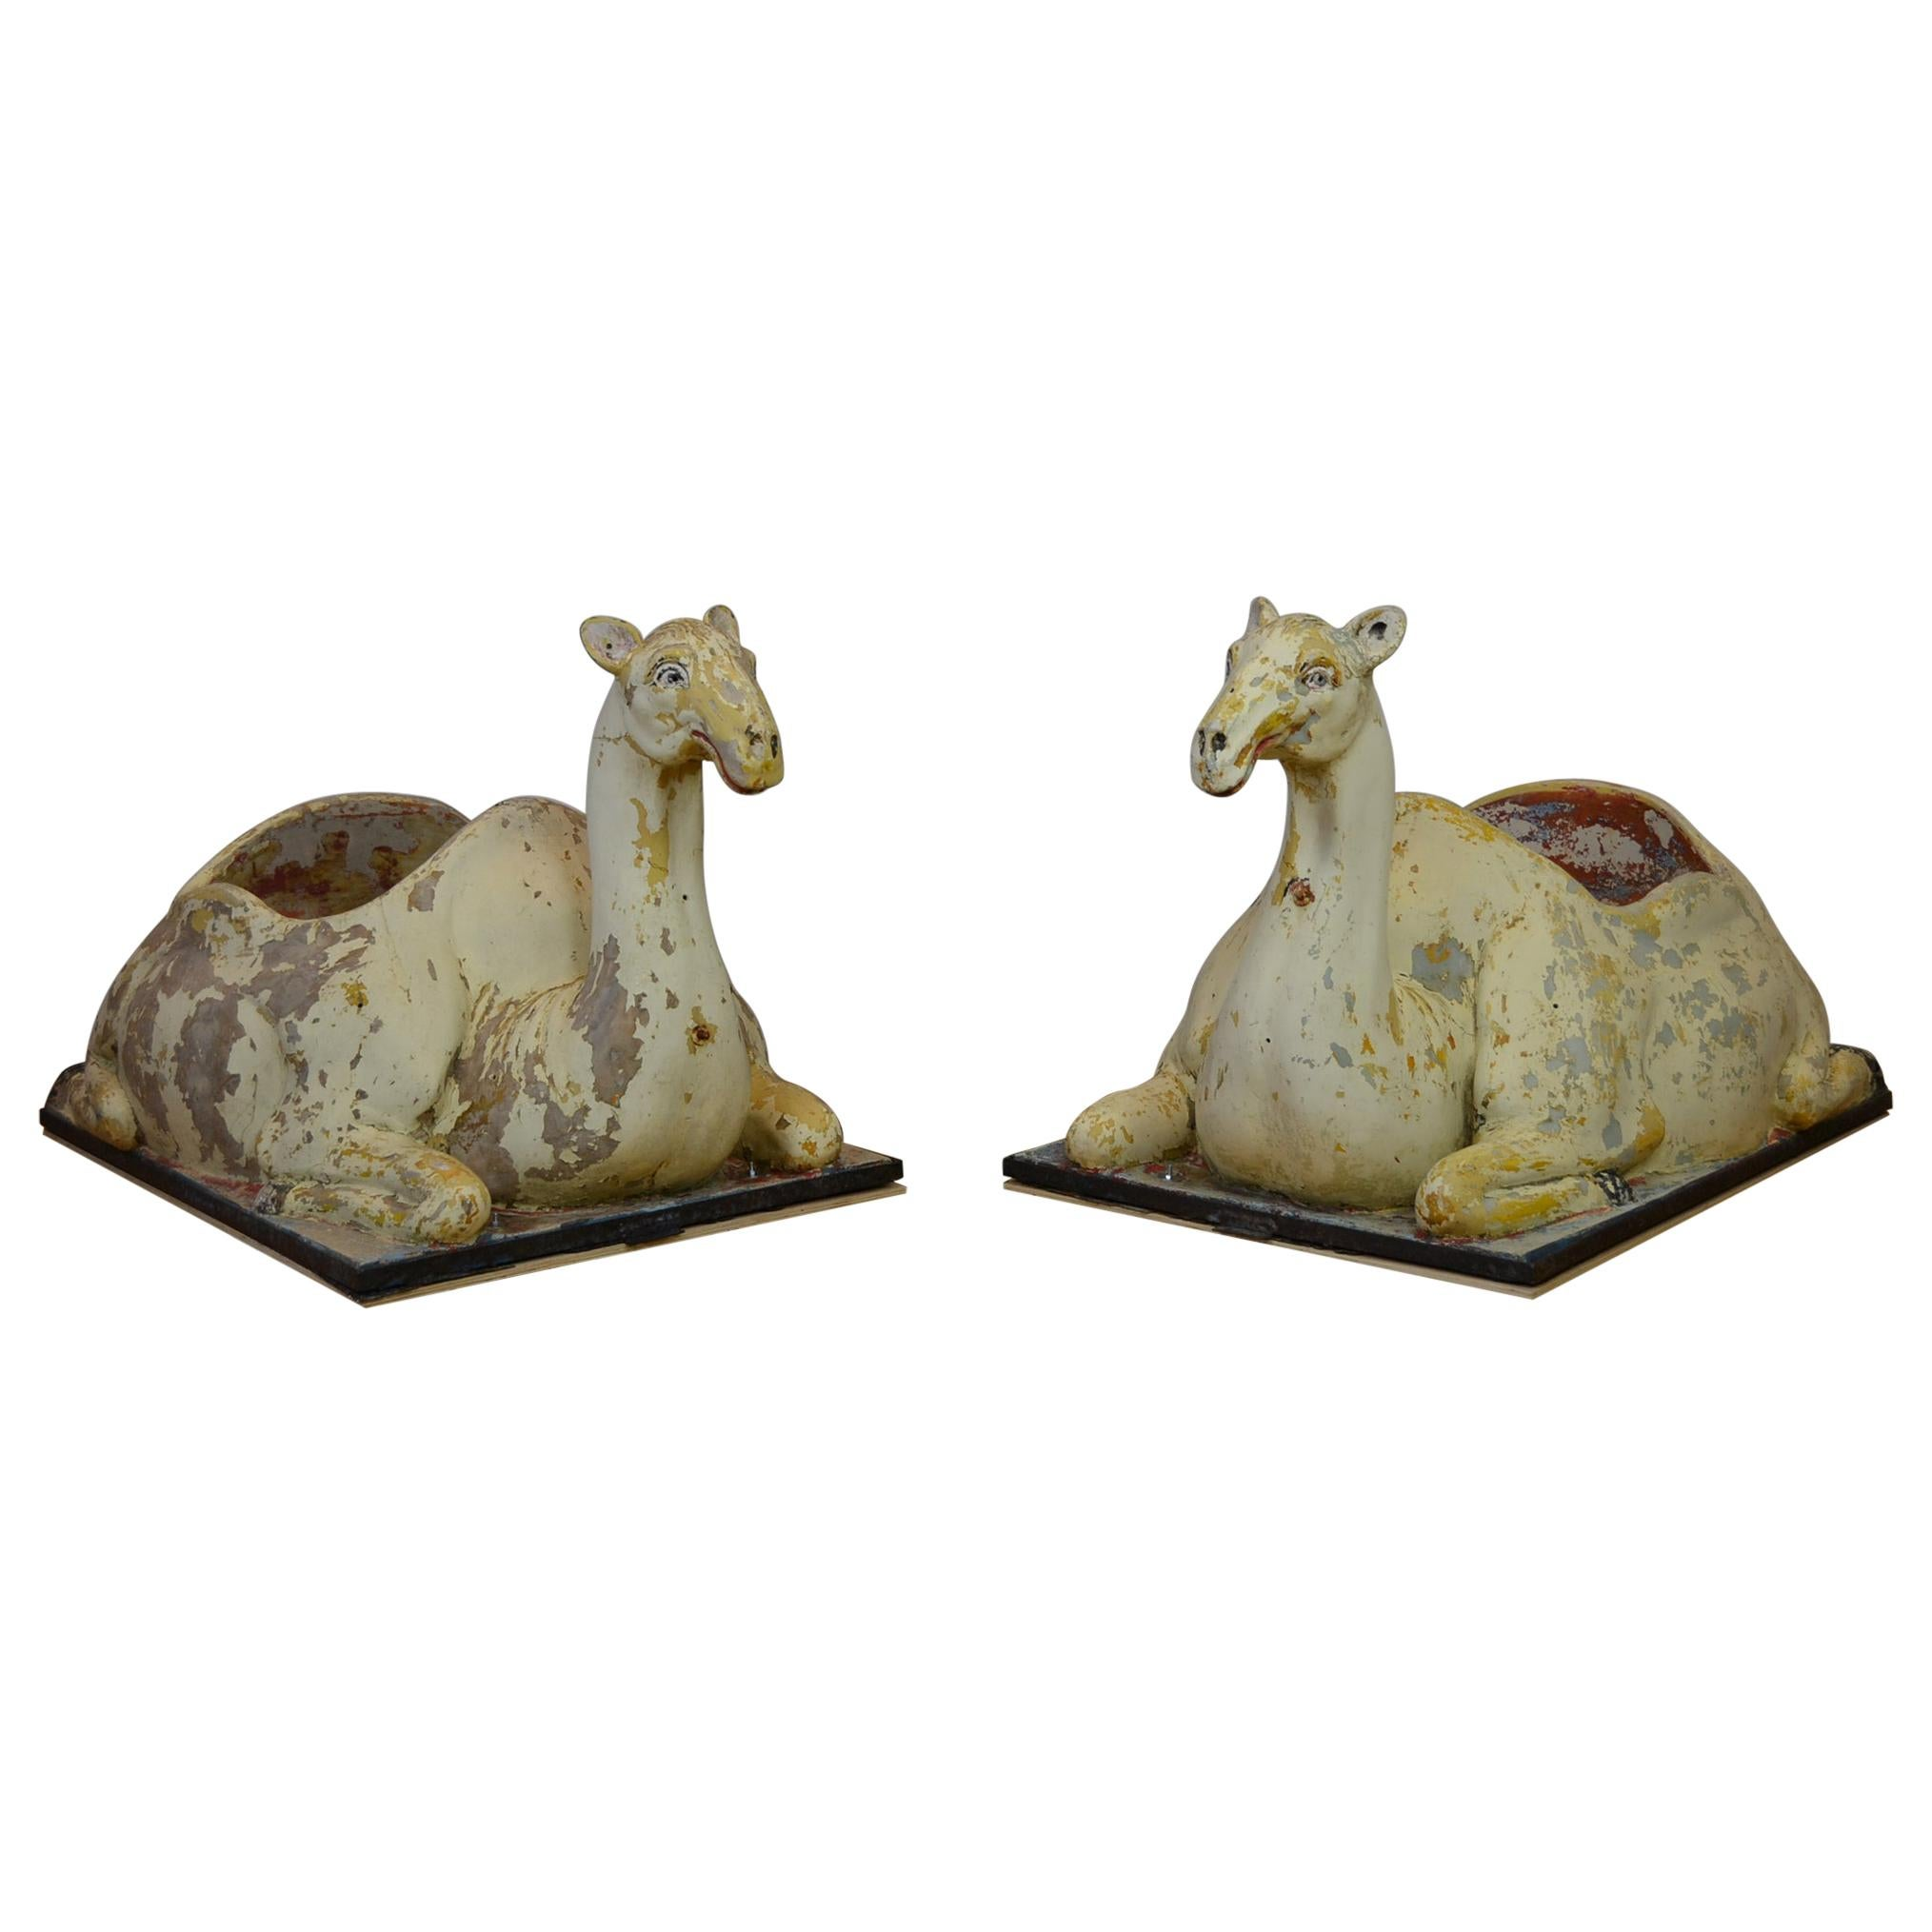 Carousel Camel Animals, 1970s, Europe, 2 pieces available